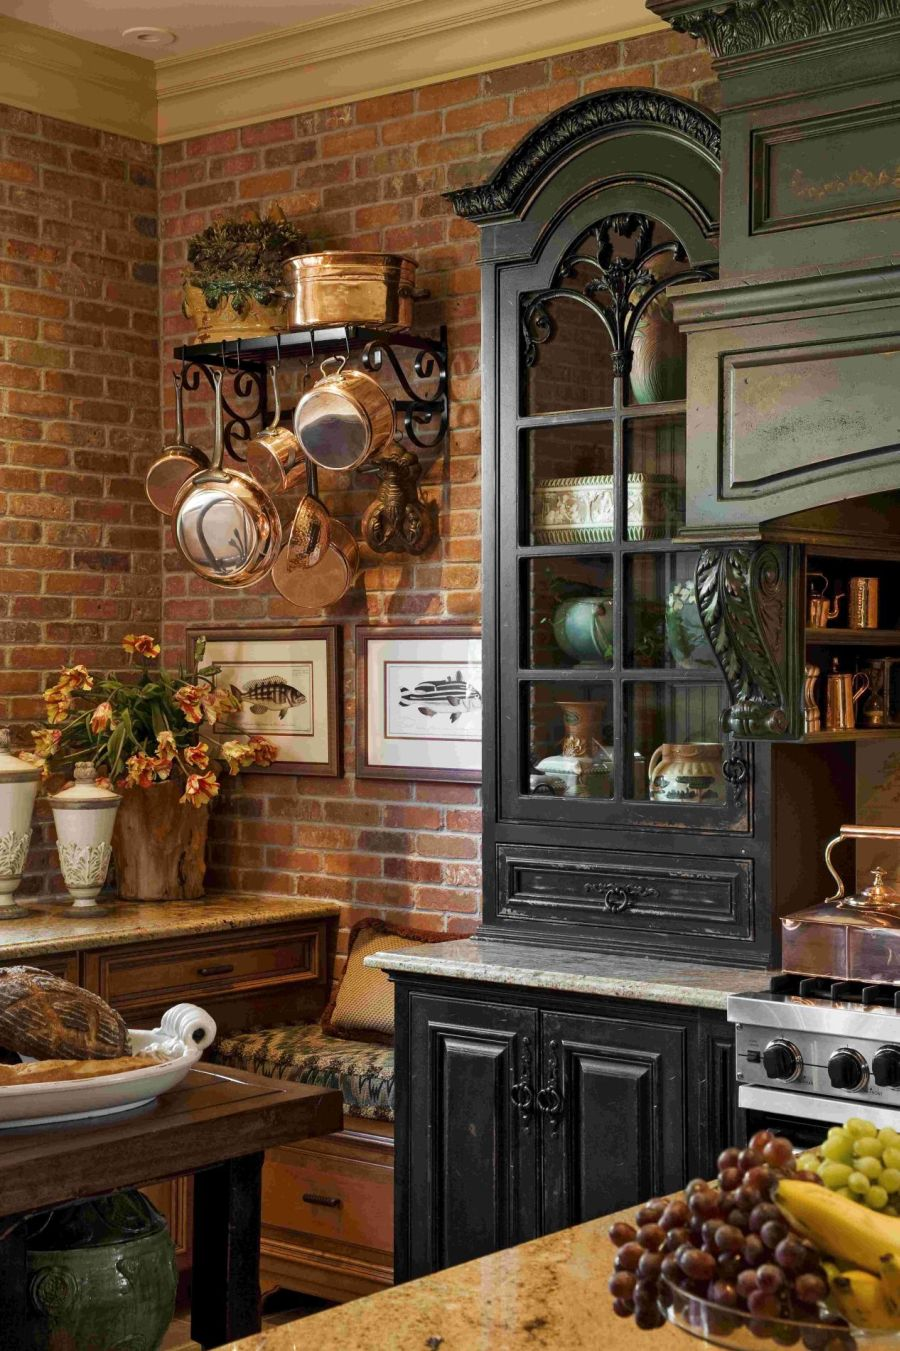 Best Kitchen Gallery: 20 Ways To Create A French Country Kitchen of French Country Kitchen Cabinets on rachelxblog.com